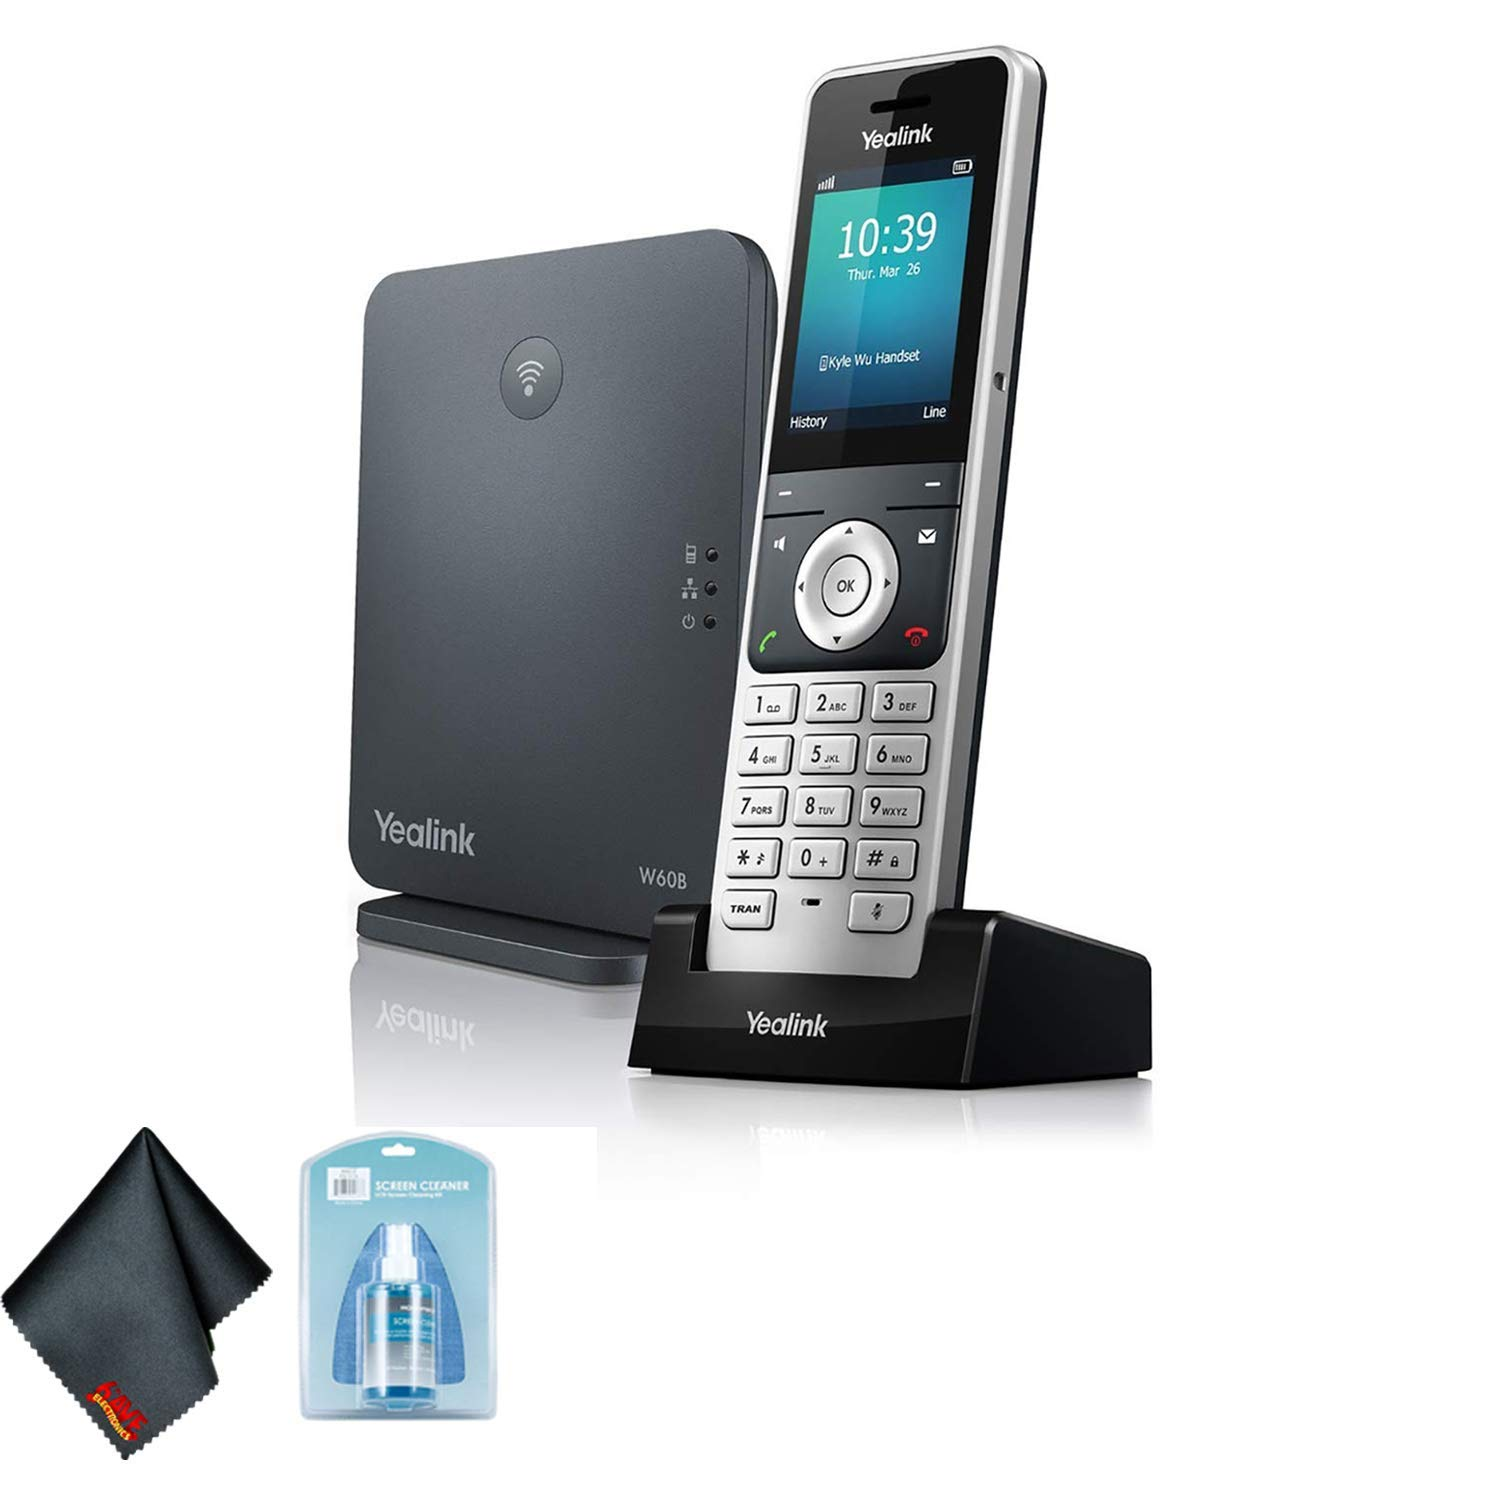 Yealink W60P Wireless DECT IP Cordless Office Phone and Base Station with 6AVE Universal Screen Cleaner by Yealink